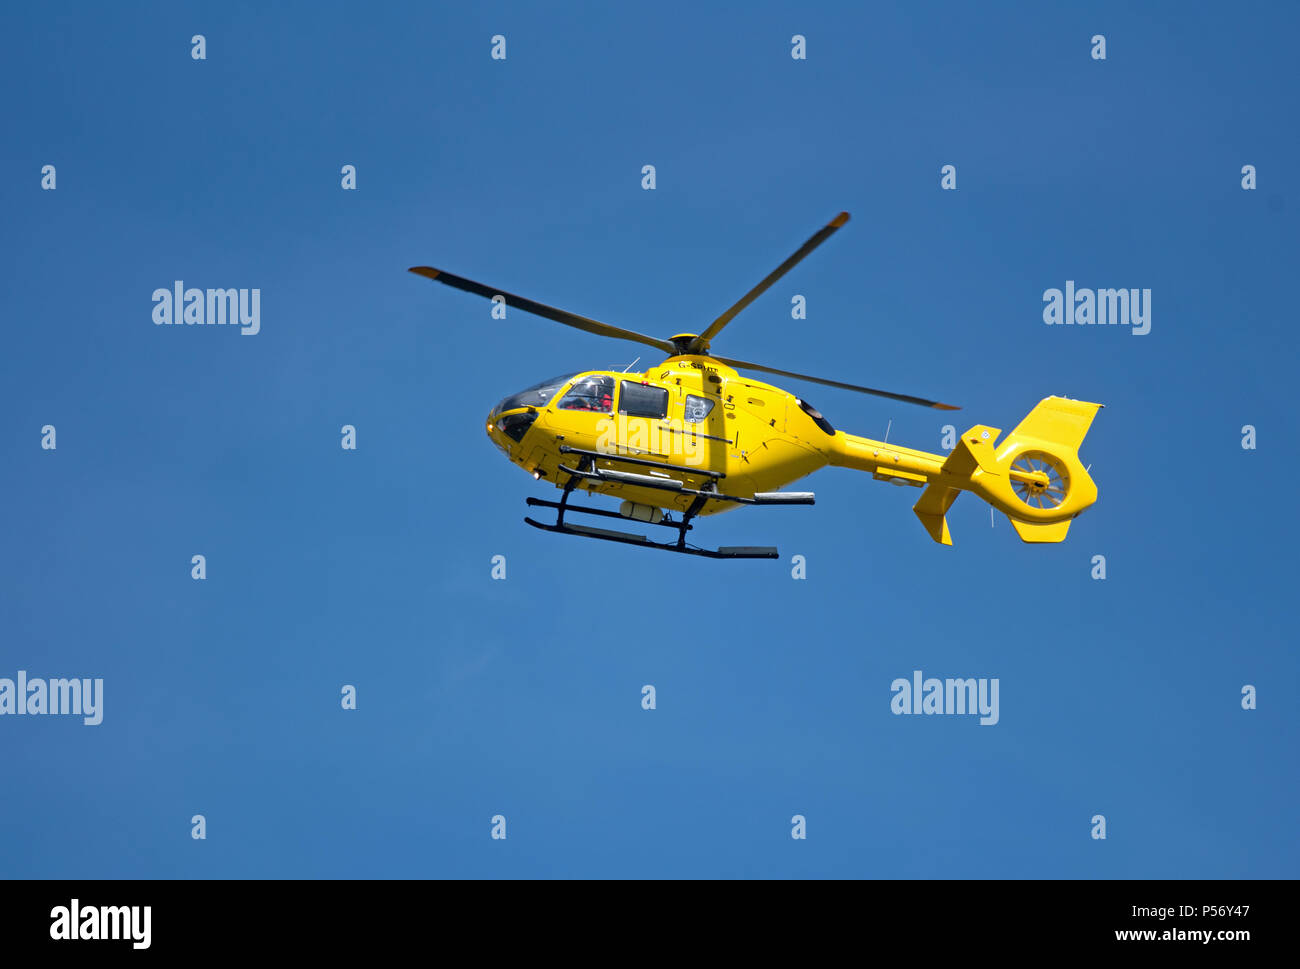 Inverness Based Helimed EC135 T2 returning to based at Inverness Dalcross Airport, in the Scottish Highlands. - Stock Image